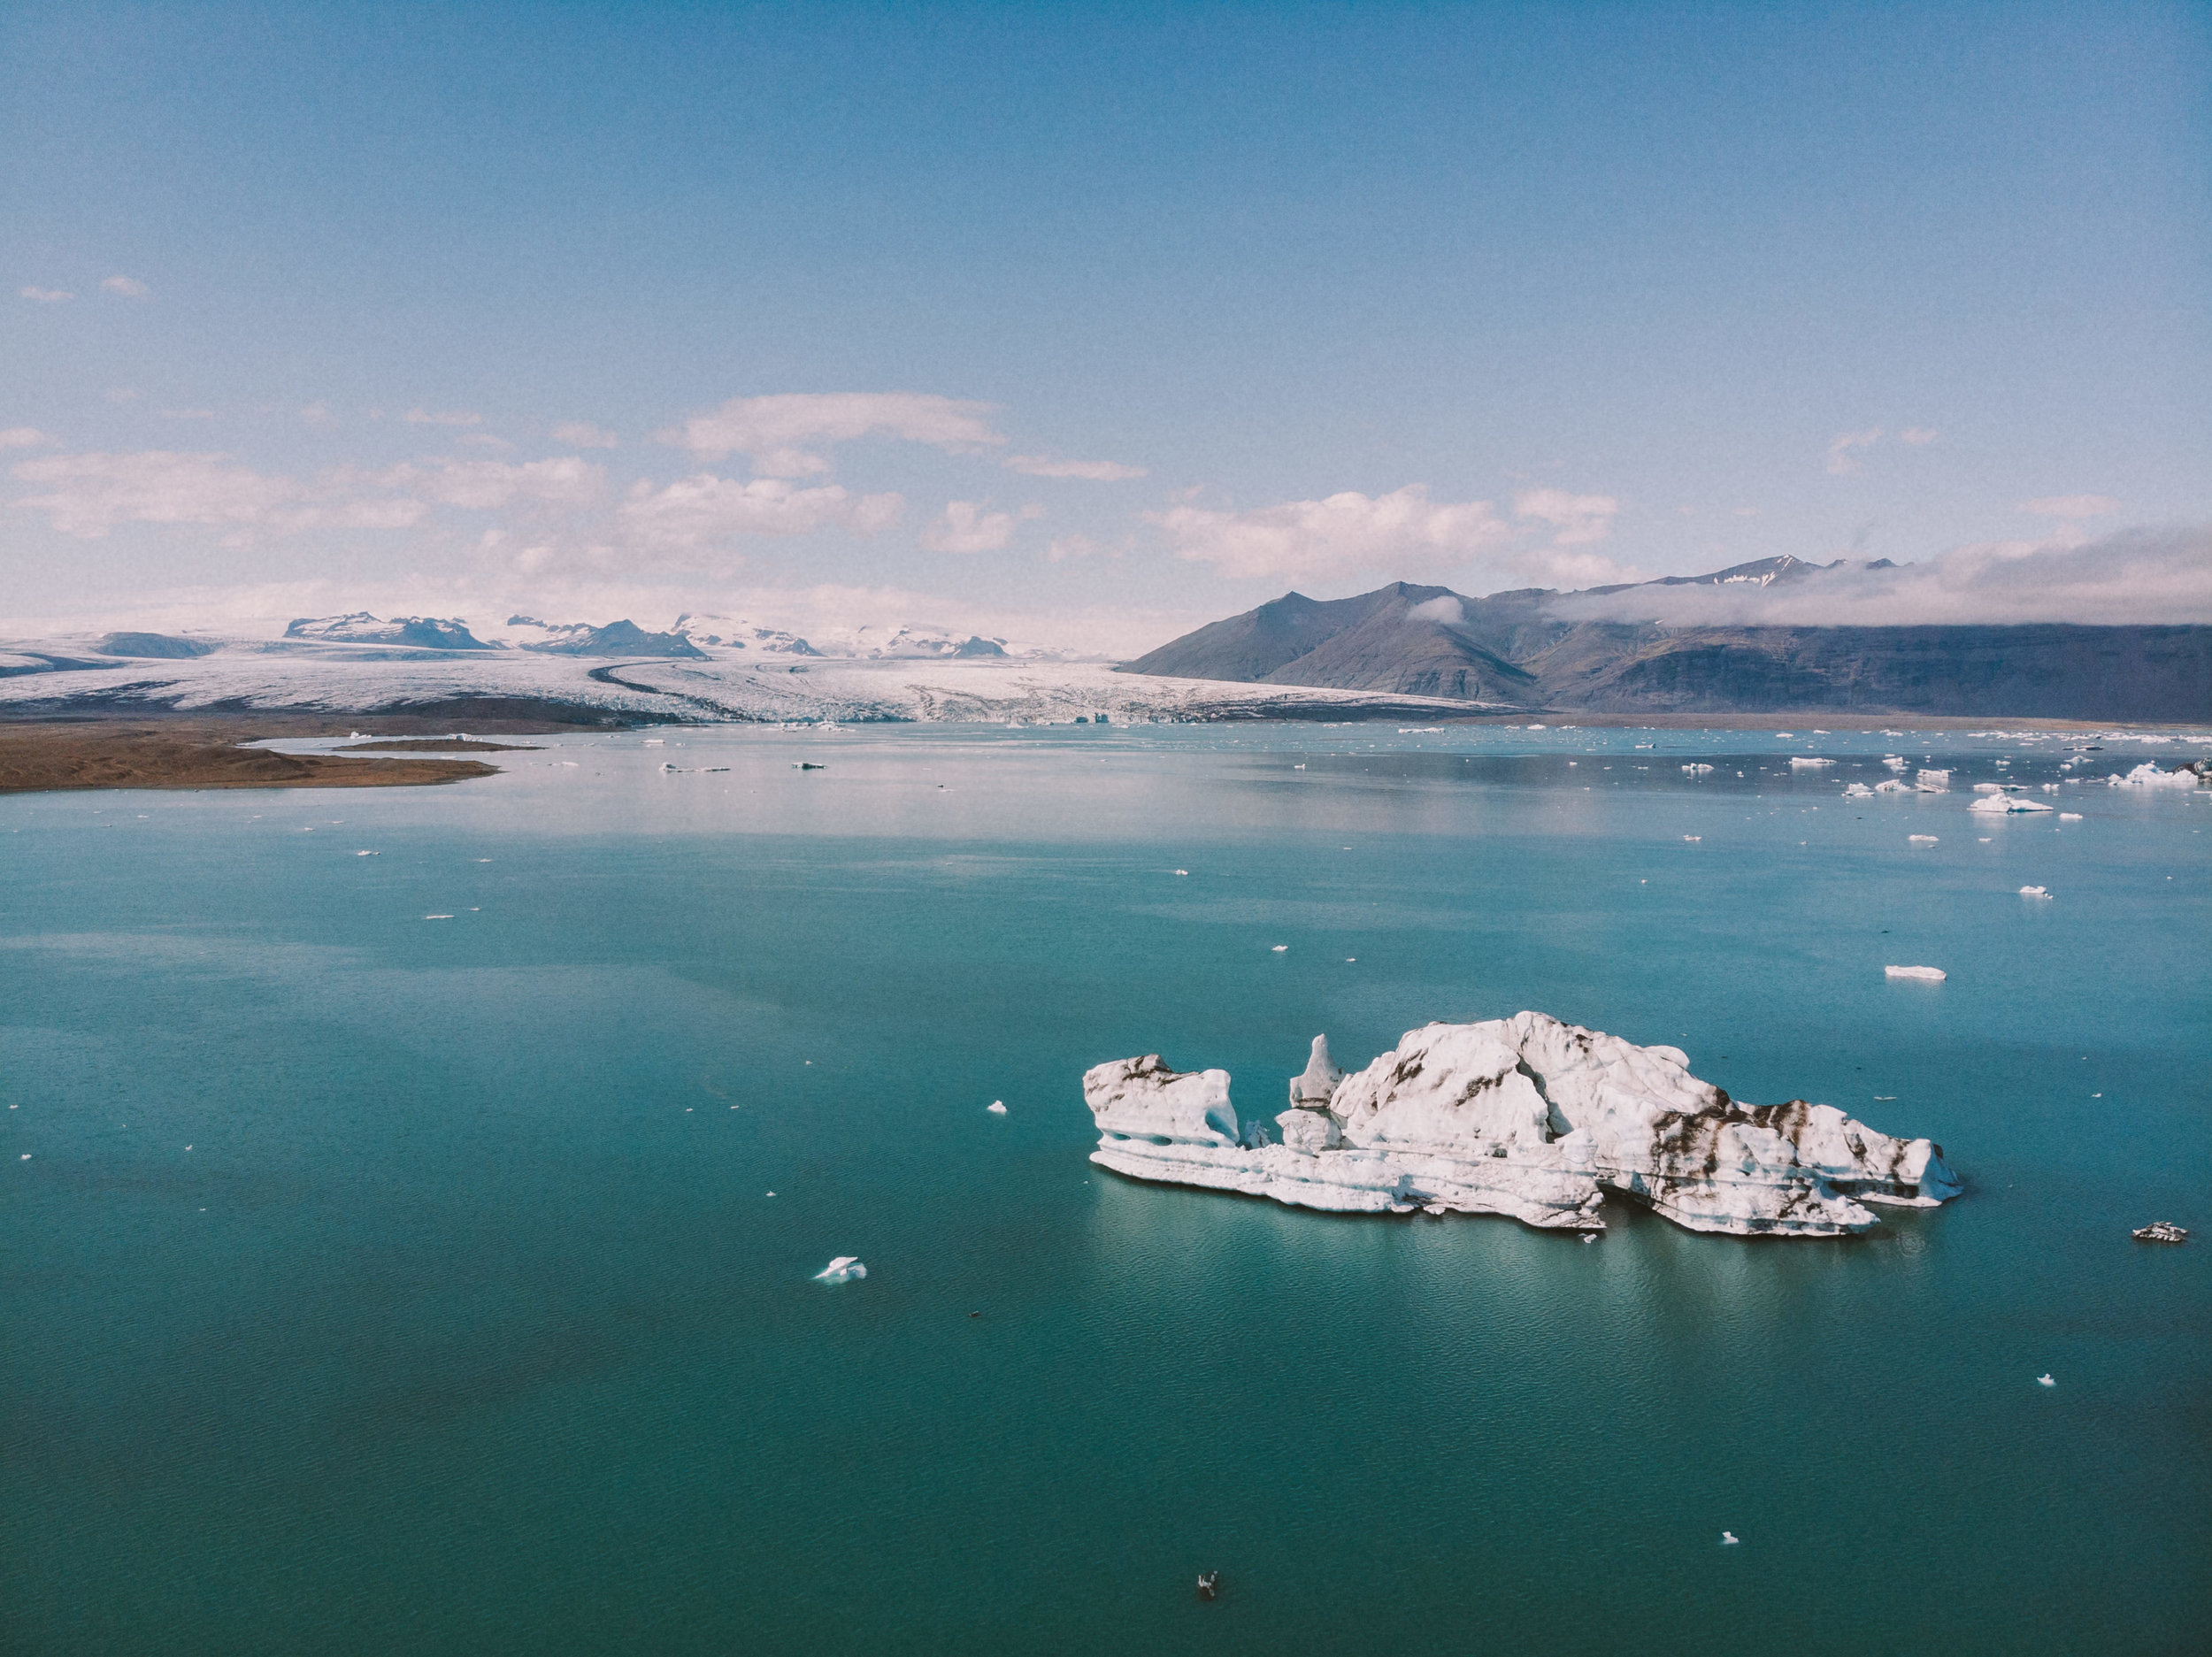 Iceland is the perfect place for getting the drone out!